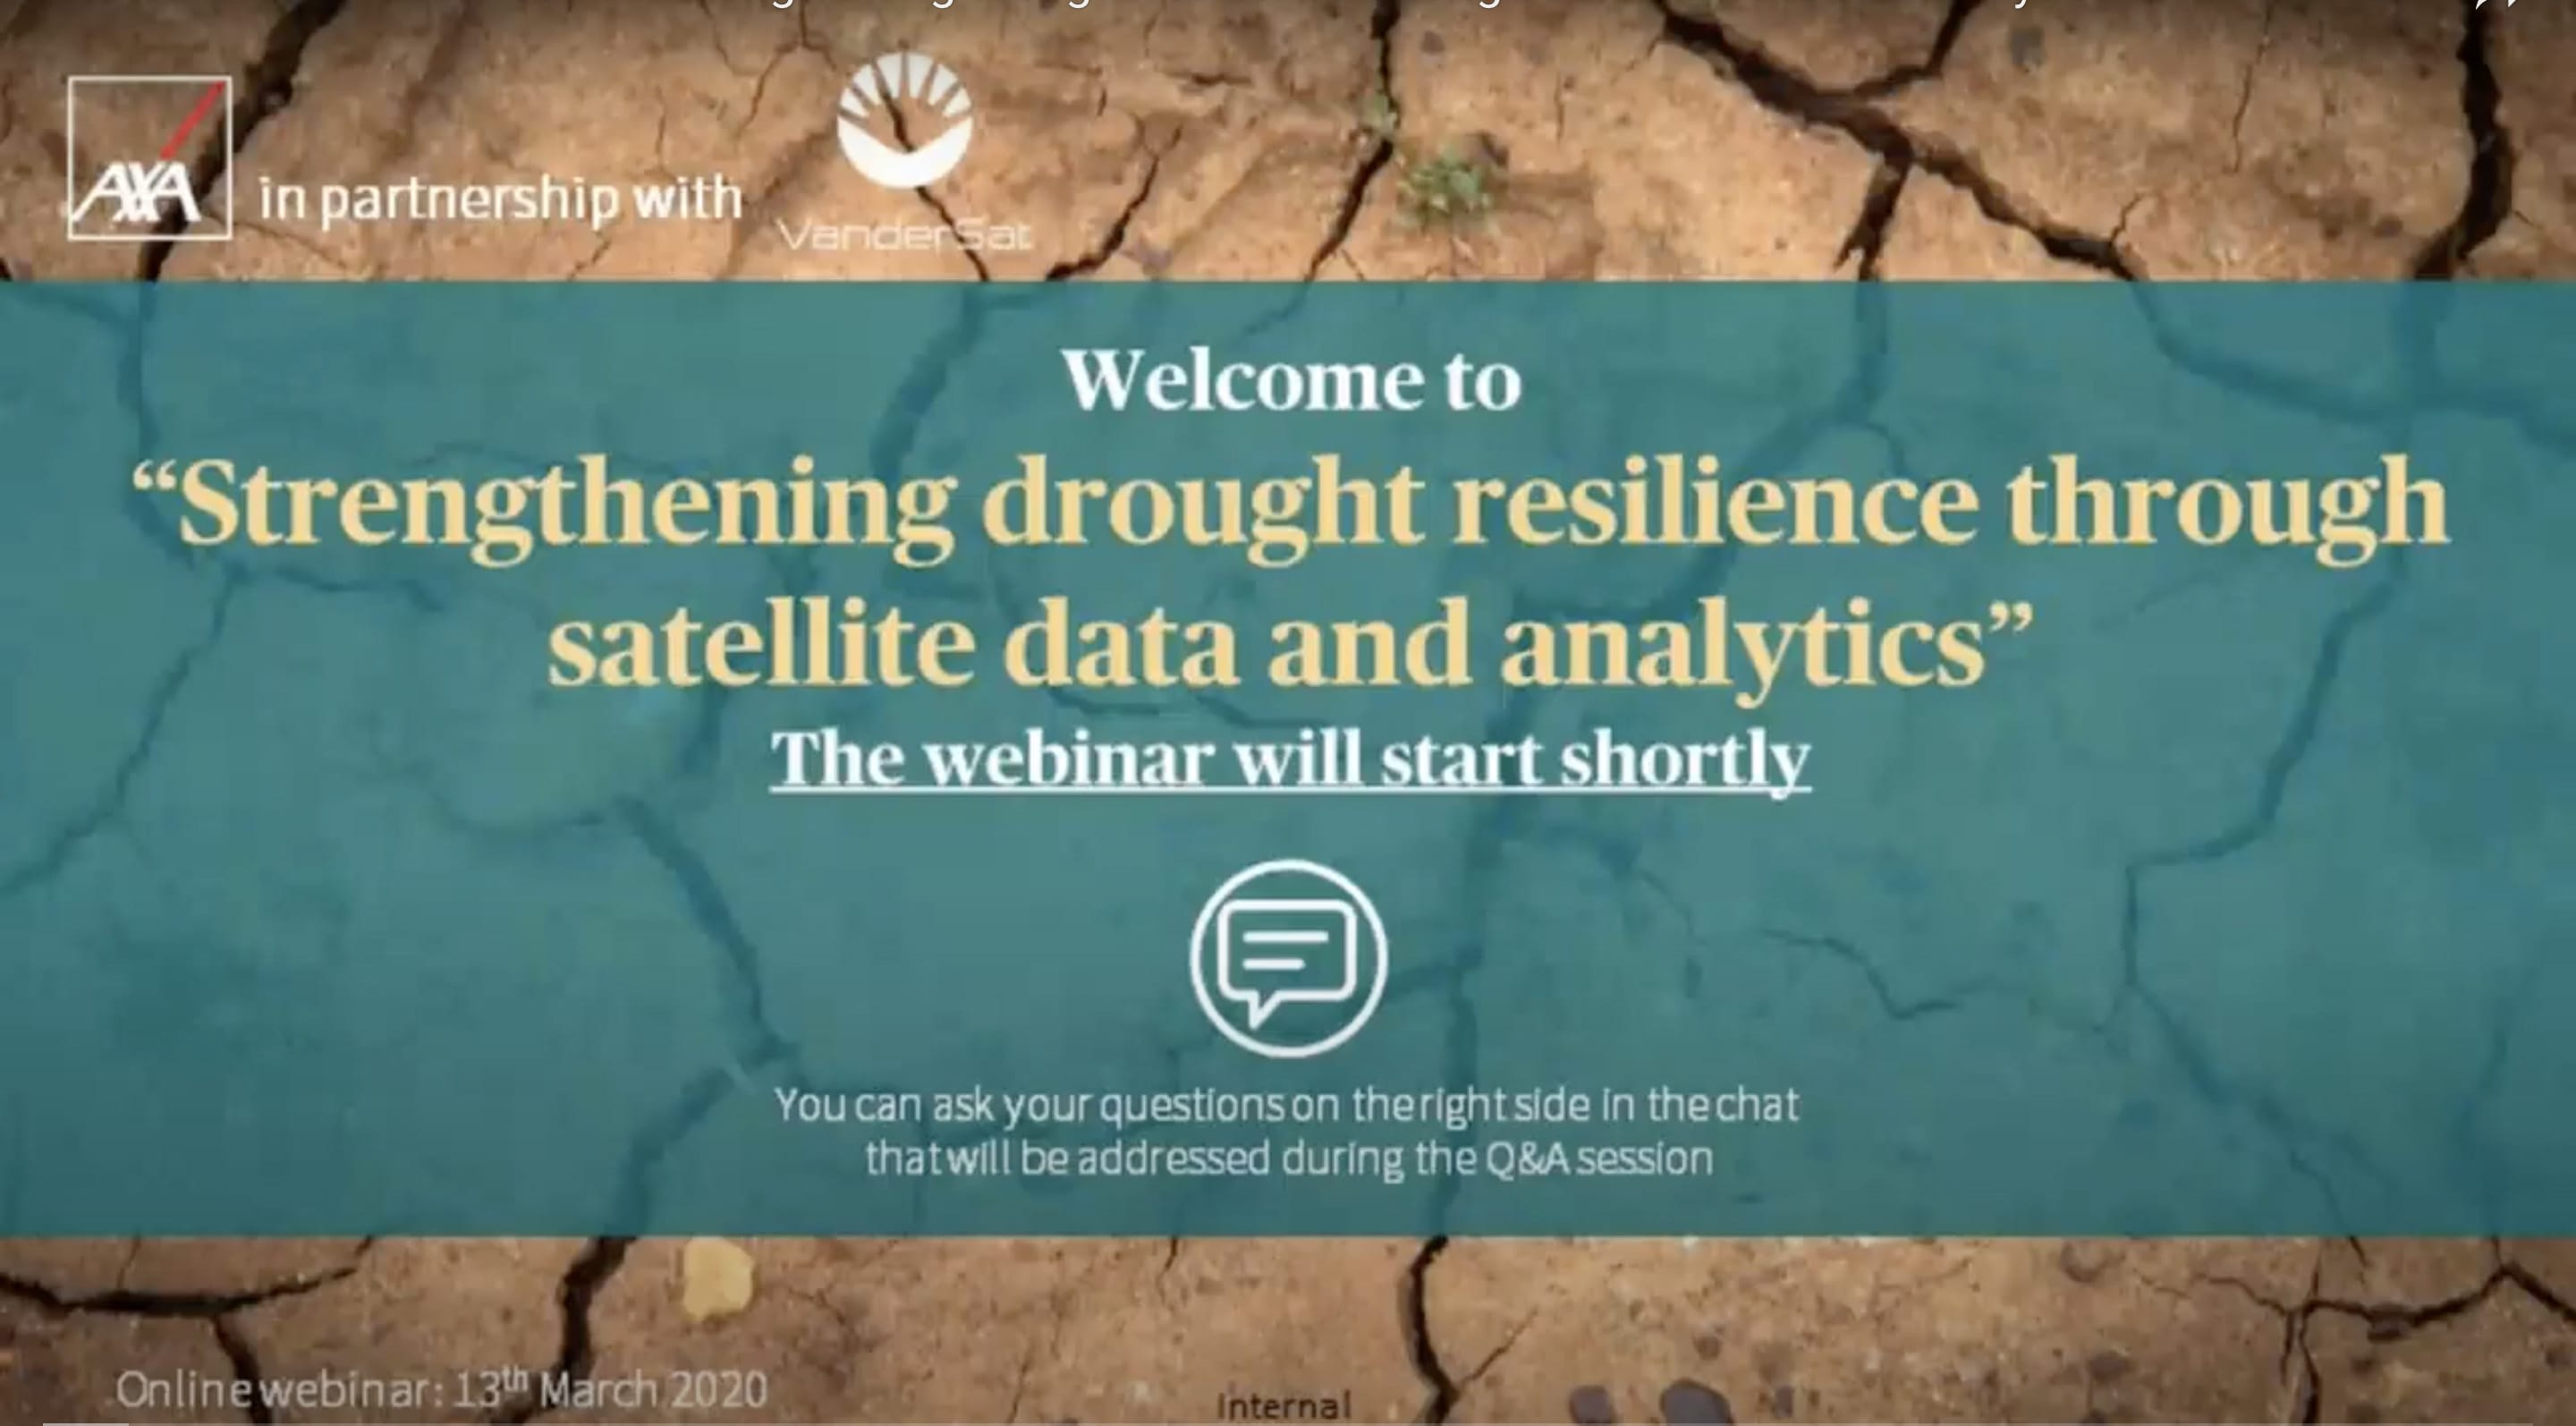 Strengthening drought resilience through satellite data and analytics